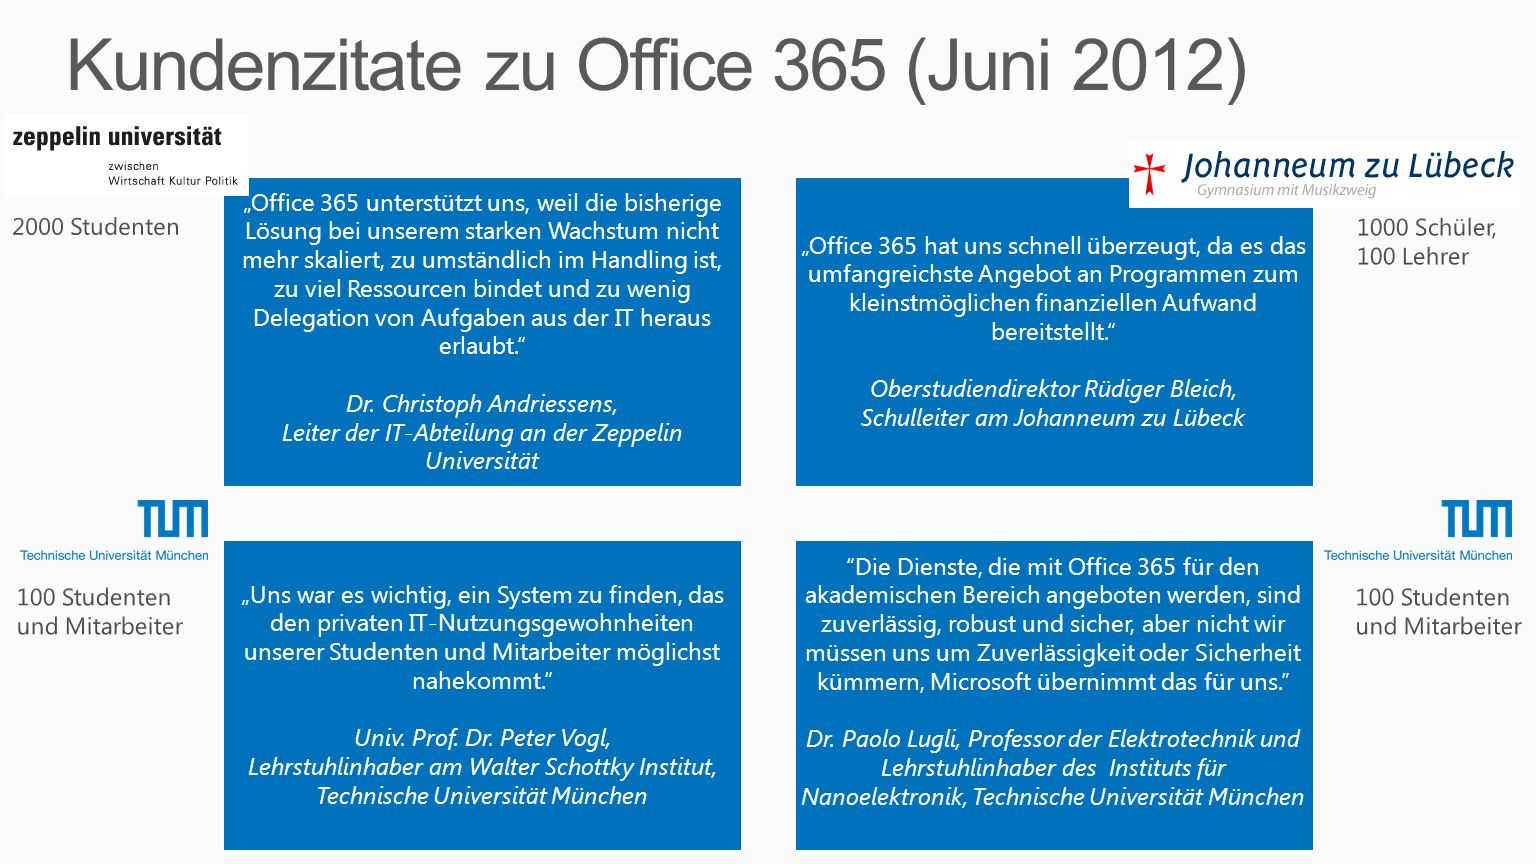 Kundenzitate zu Office 365 (Juni 2012)